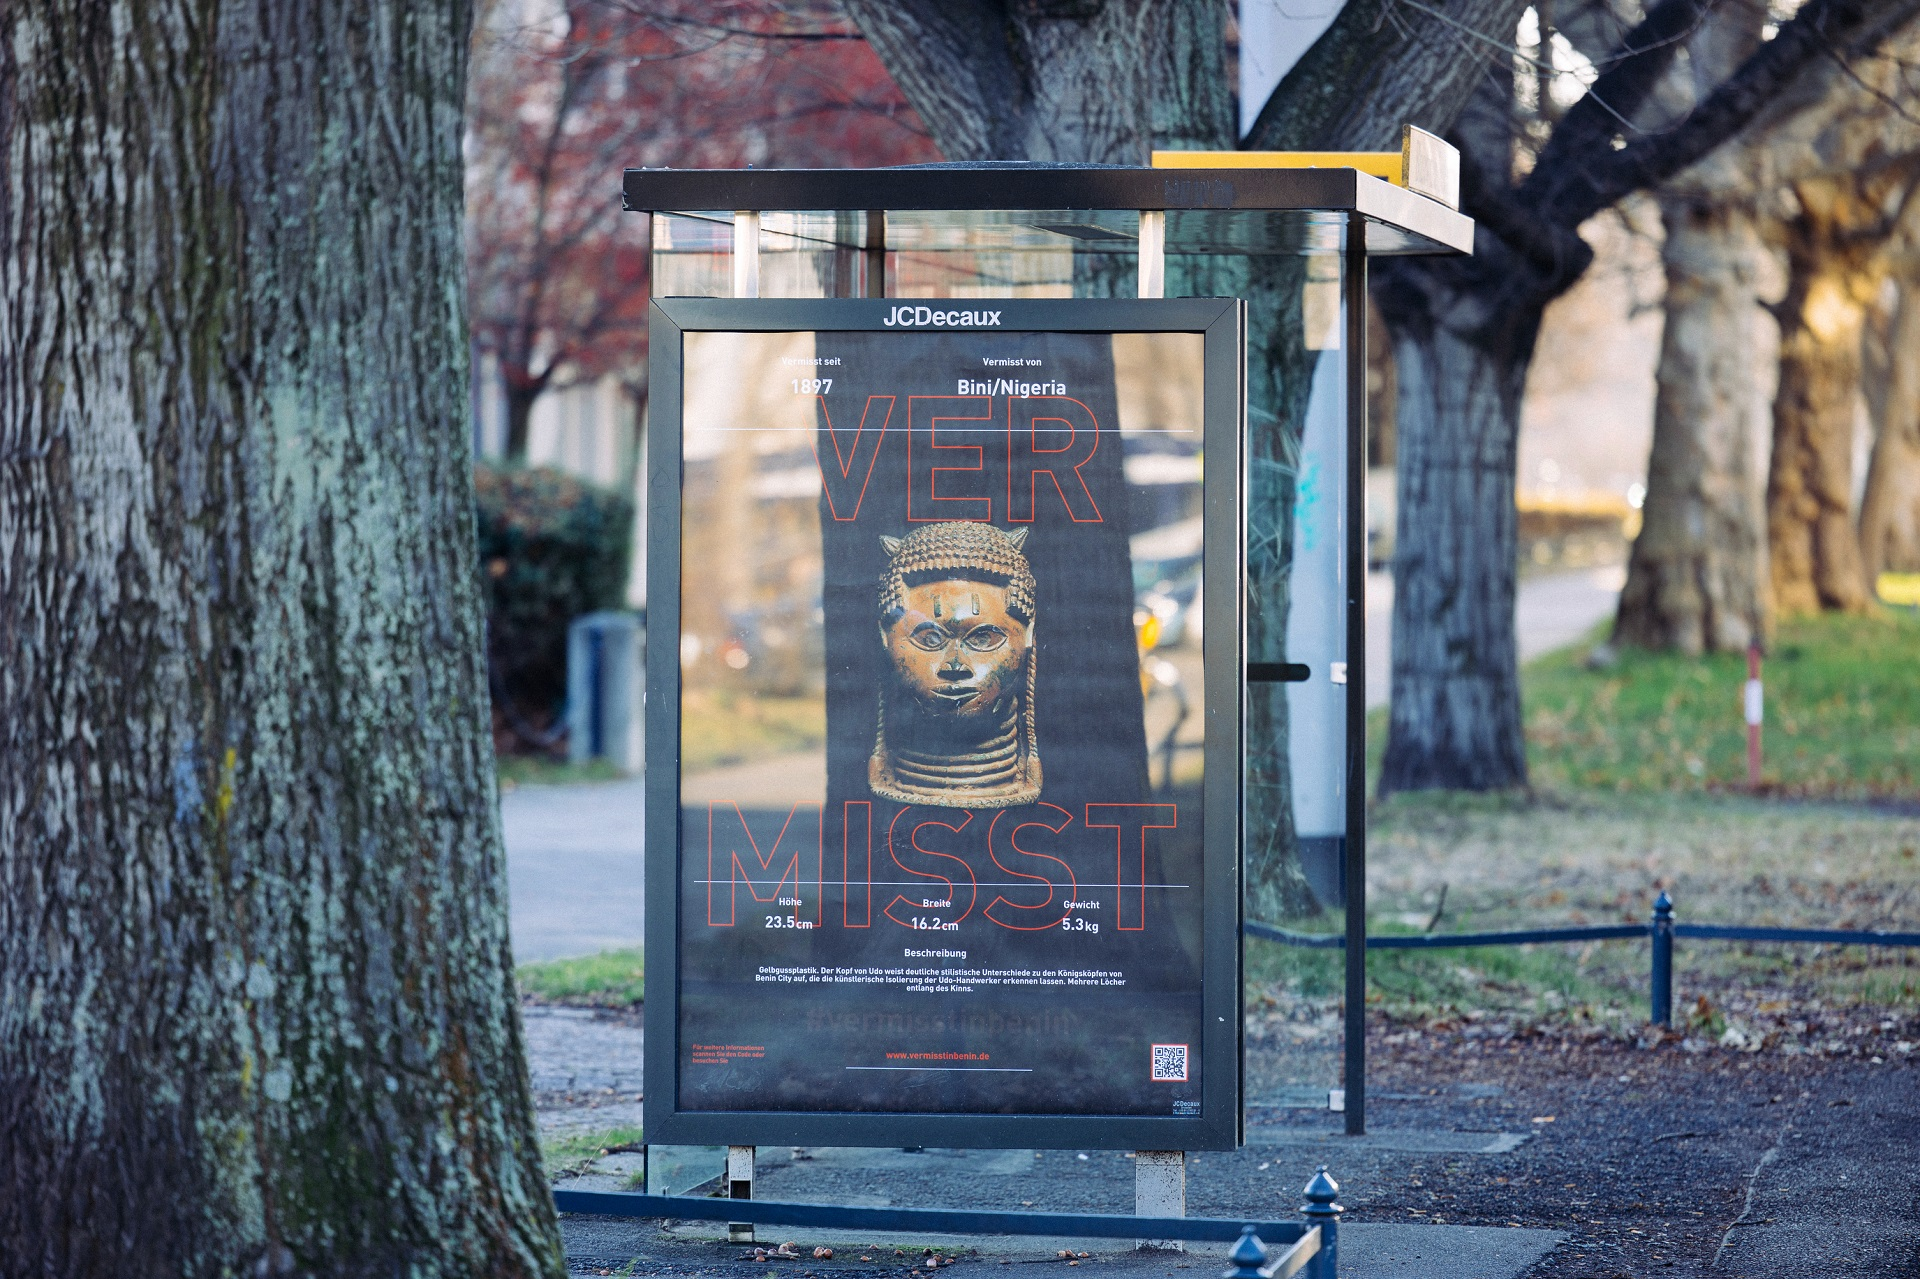 A Nigerian Artist Has Put Up More Than 200 'Missing' Posters Depicting the Benin Bronzes Throughout the City of Dresden